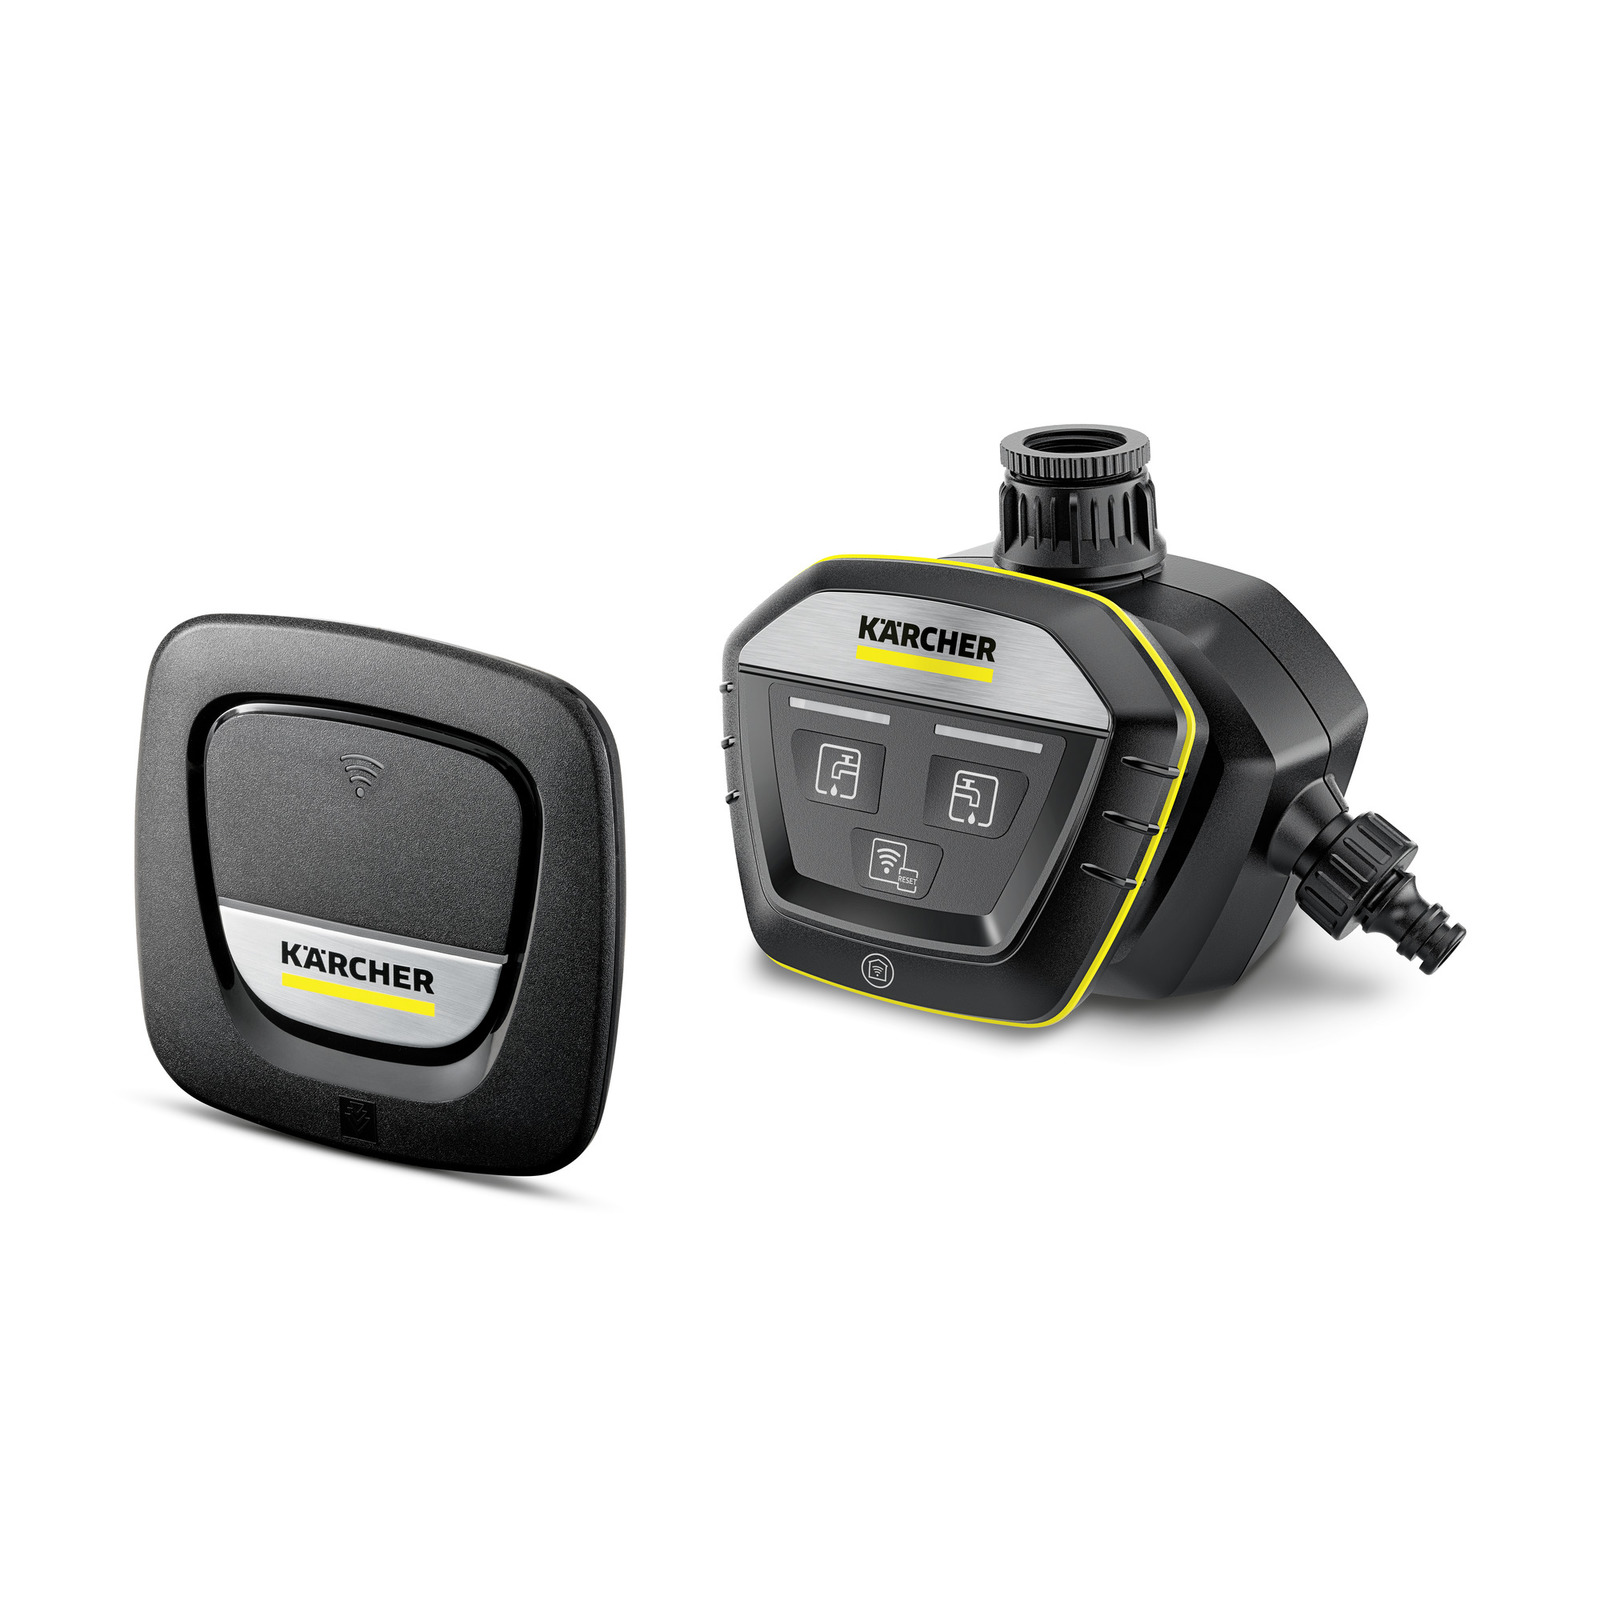 Watering System Duo Smart Kit Karcher International